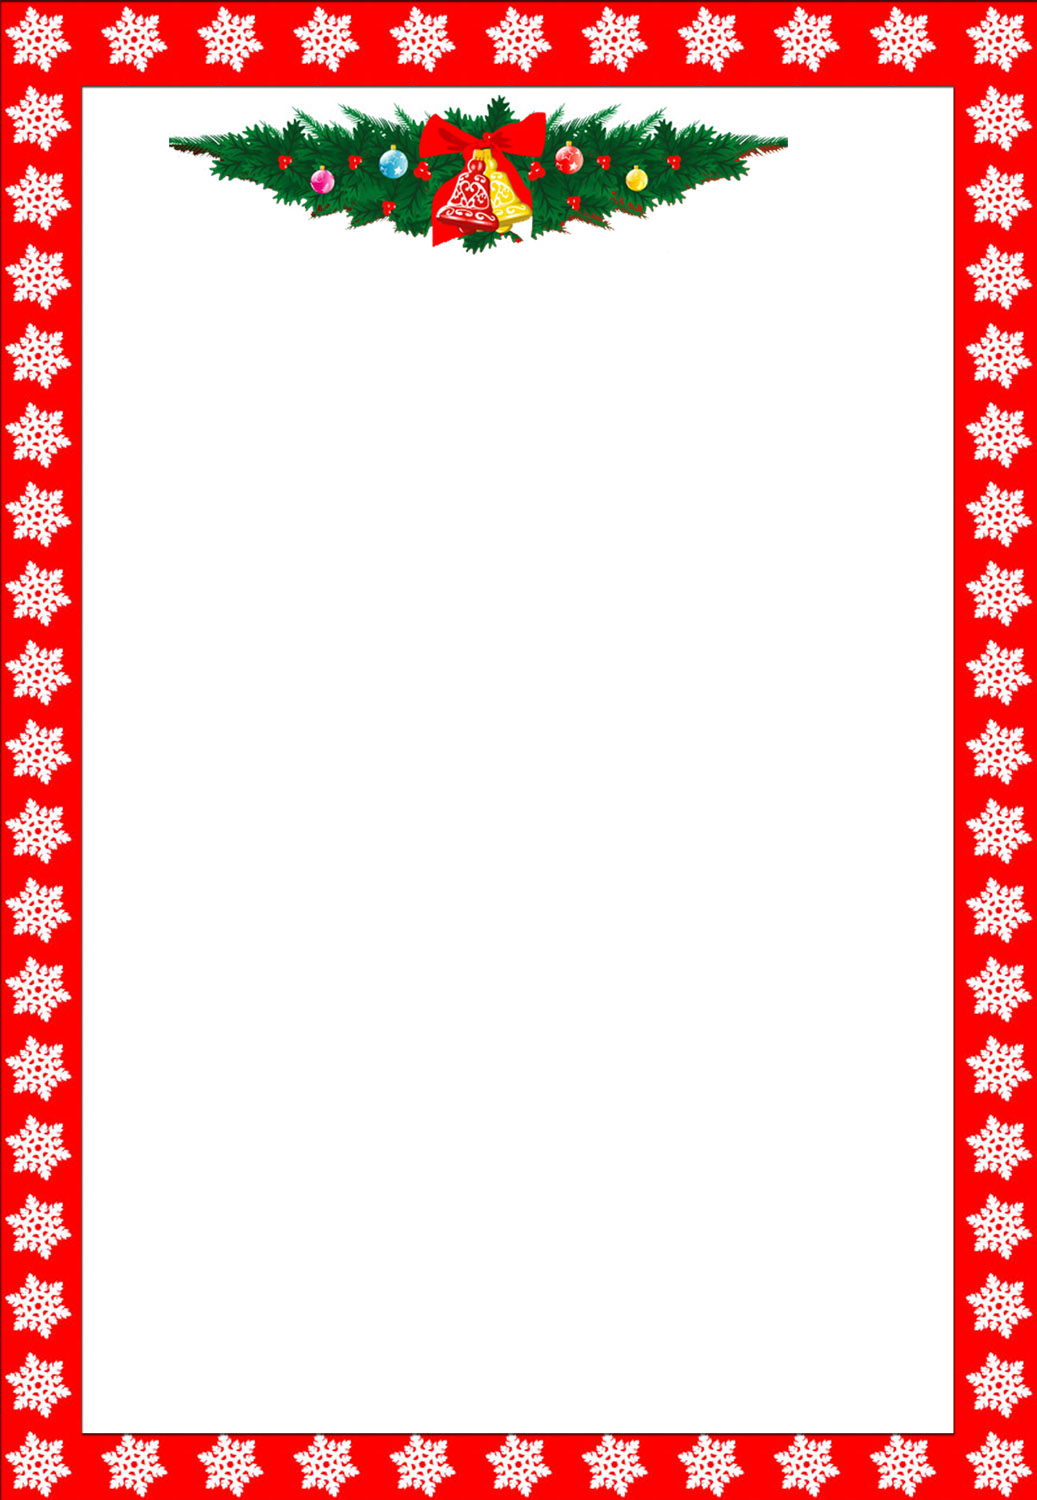 clipart xmas borders - photo #40